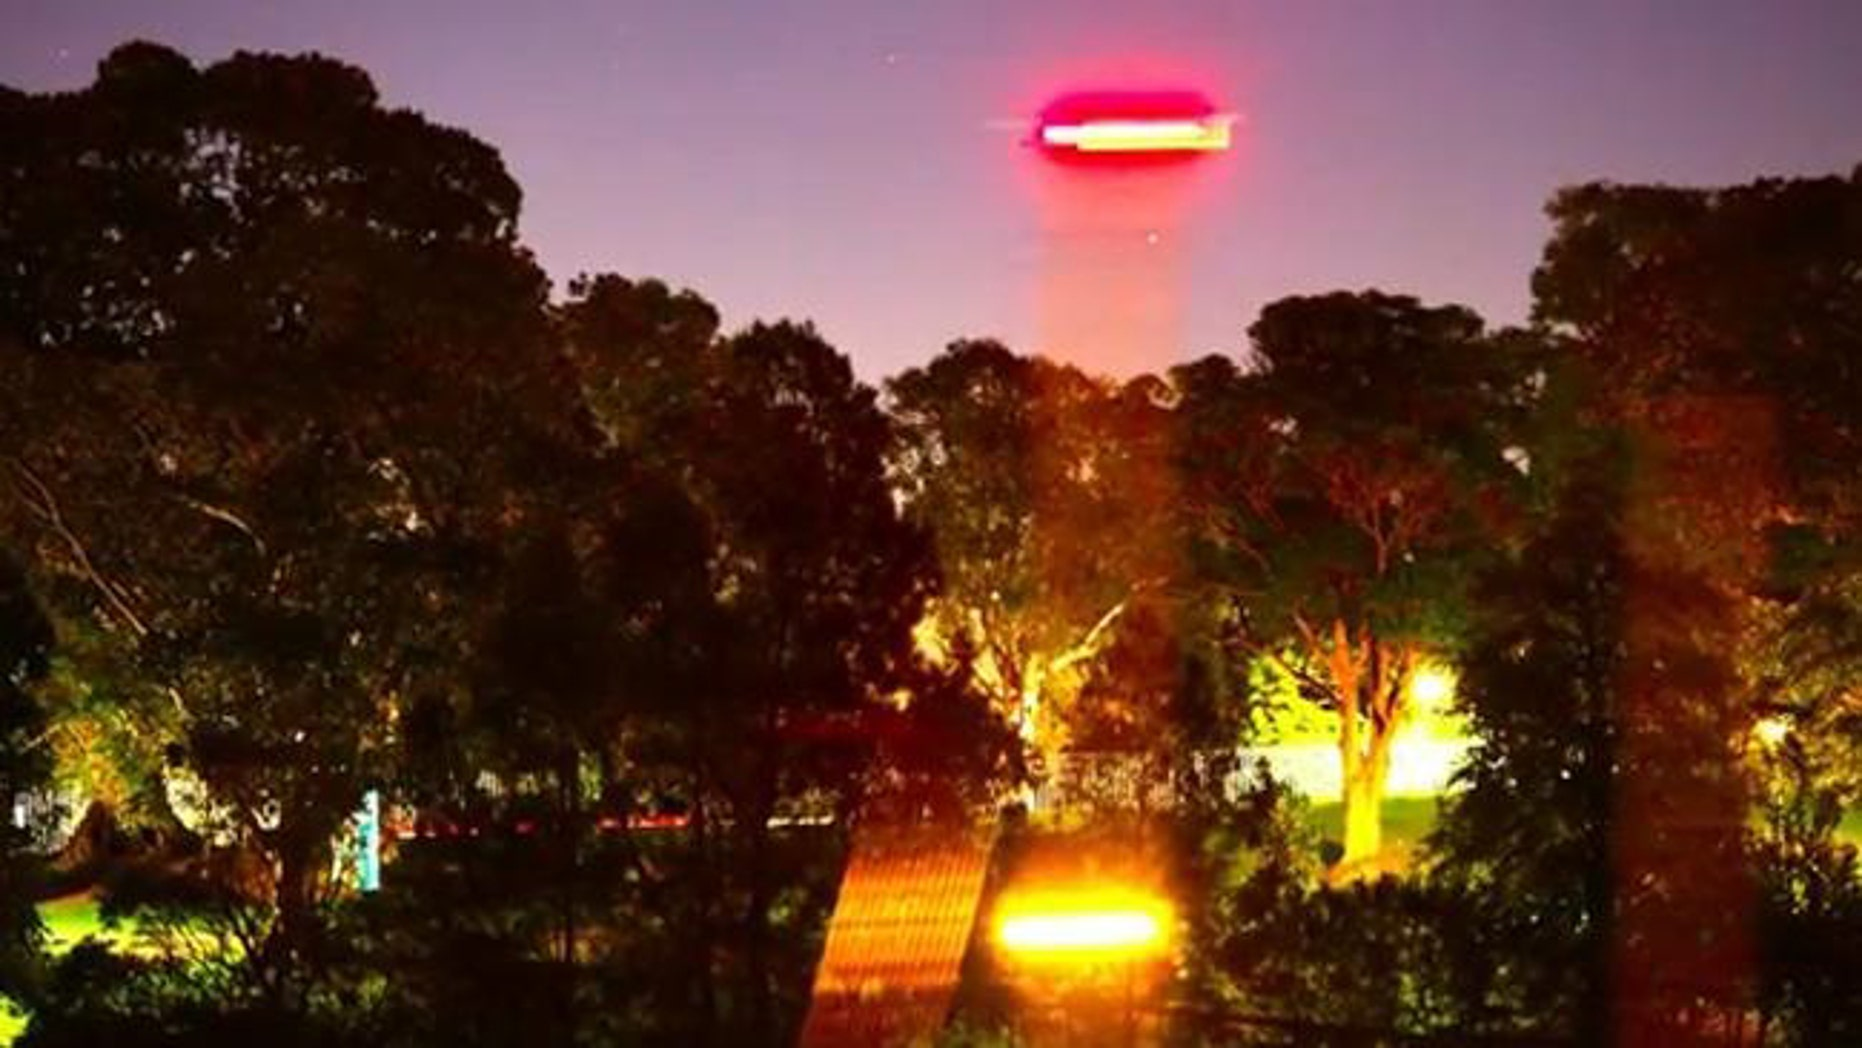 Actor Russell Crowe's footage of a 'UFO' over Sydney's Royal Botanic Gardens.